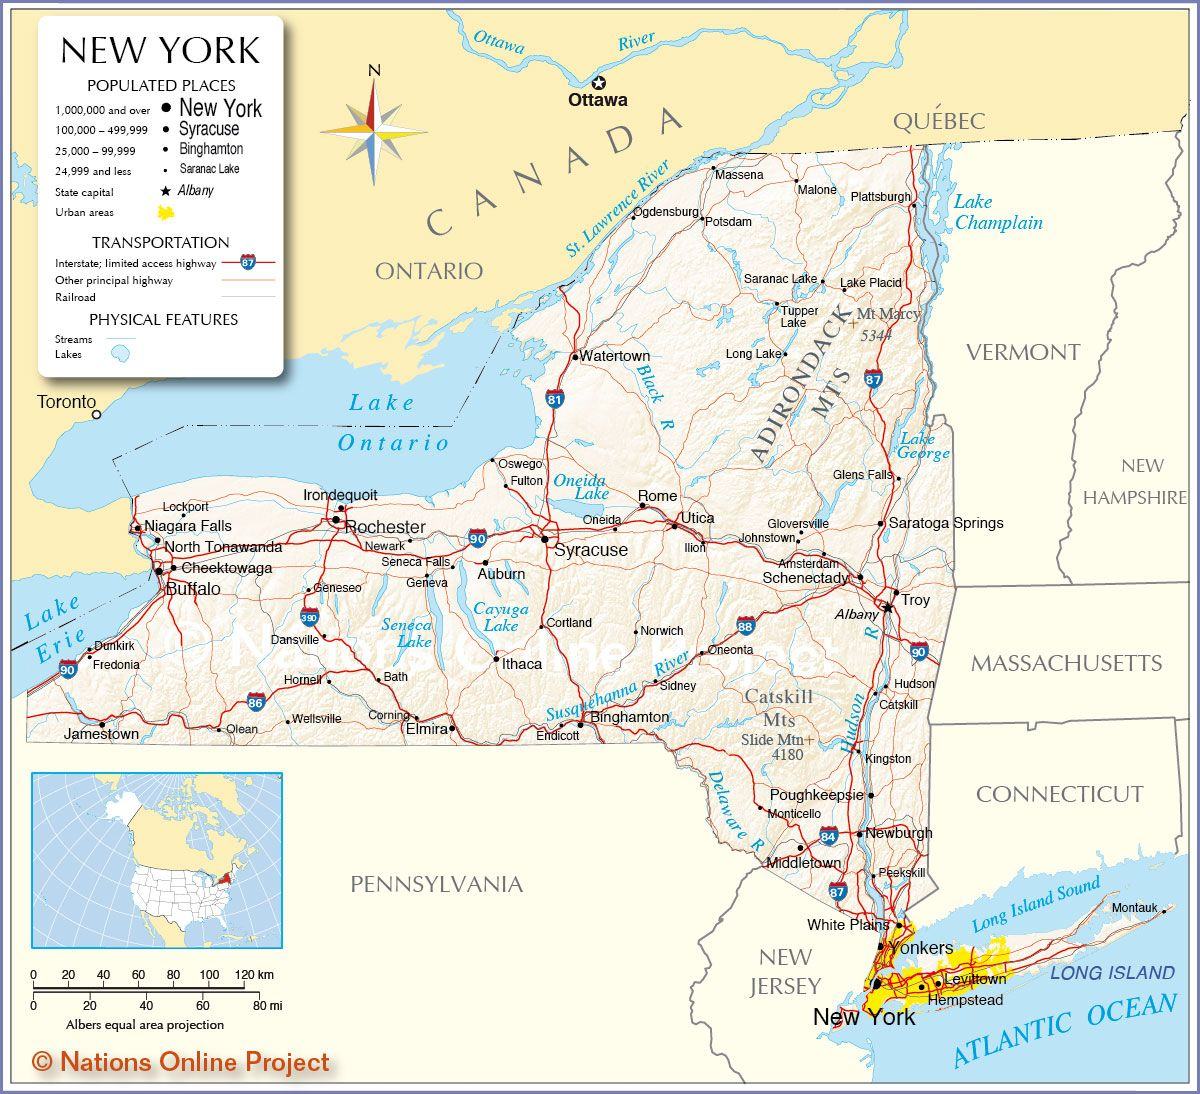 Map New York Reference Map Of The State Of New York USA - New york on us map